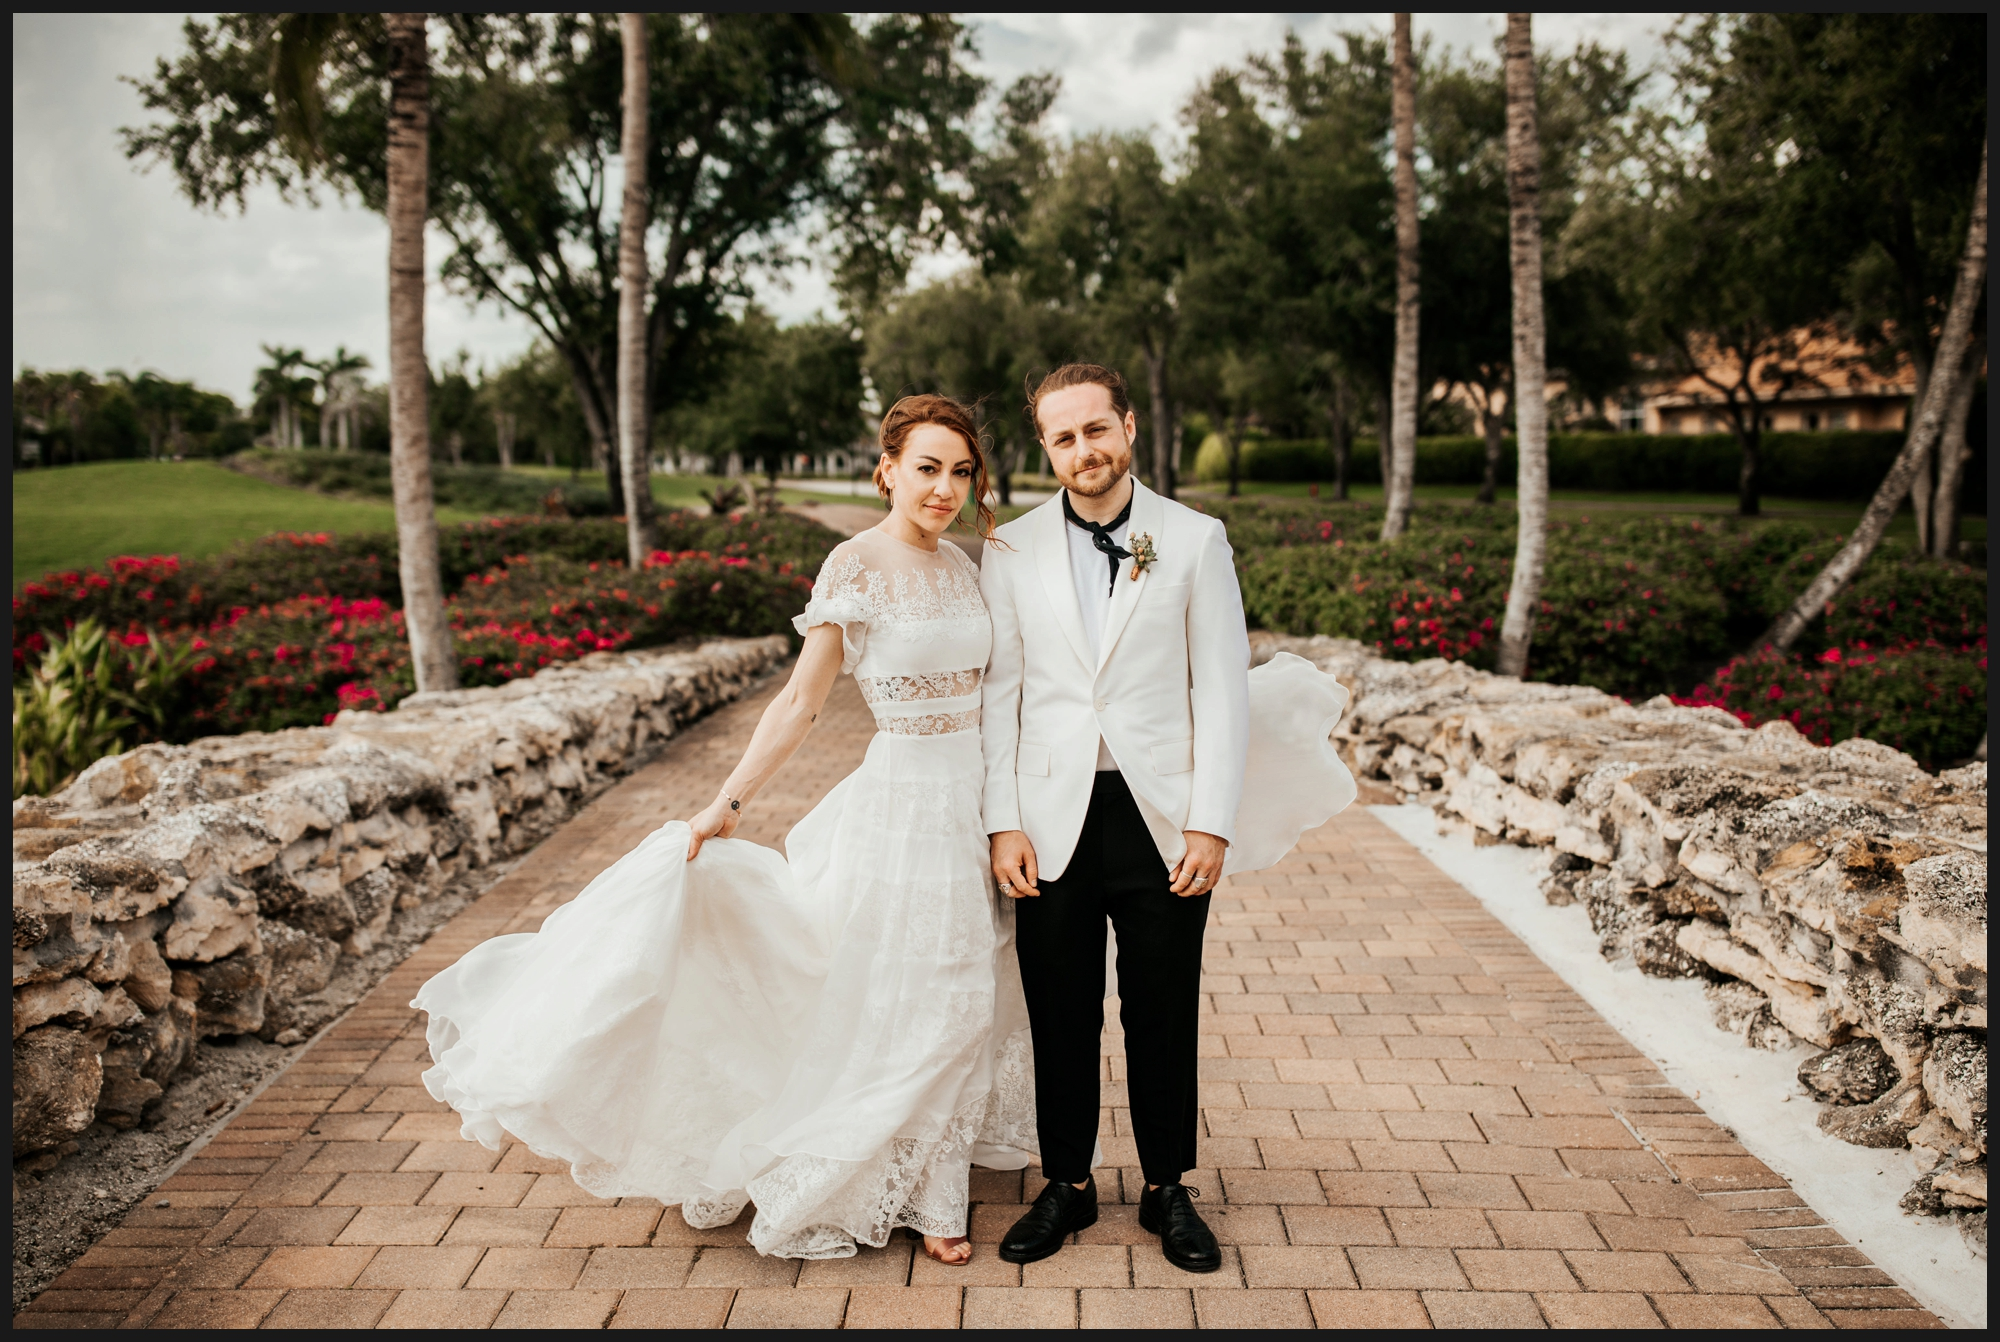 Orlando-Wedding-Photographer-destination-wedding-photographer-florida-wedding-photographer-bohemian-wedding-photographer_1862.jpg